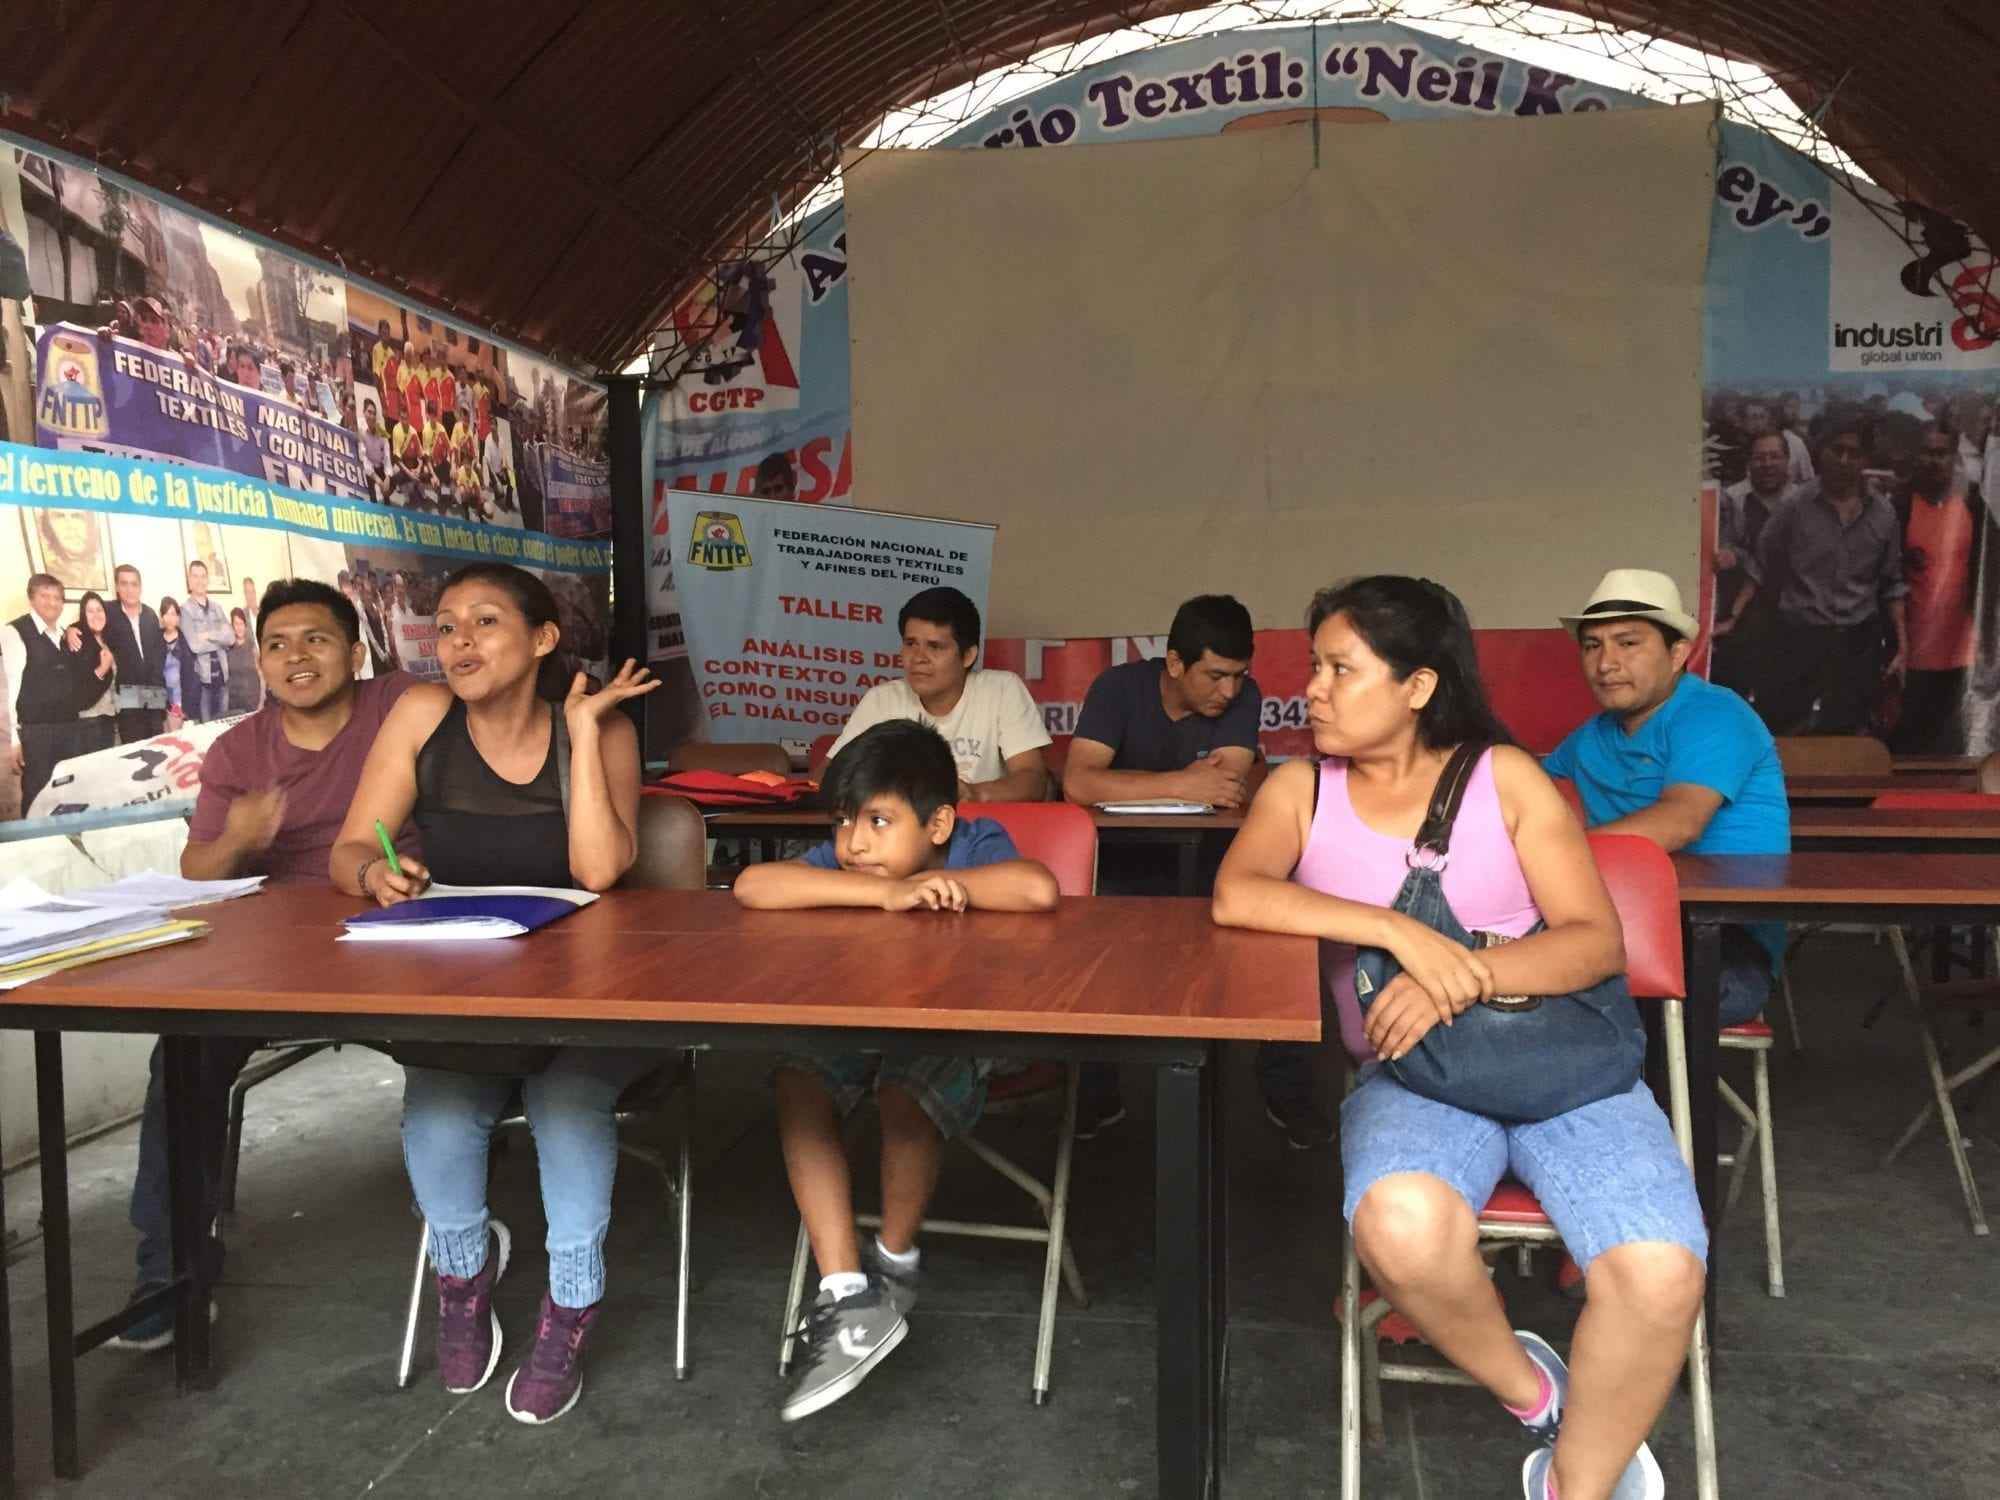 11 Textile Workers in Peru Dismissed after Forming Union